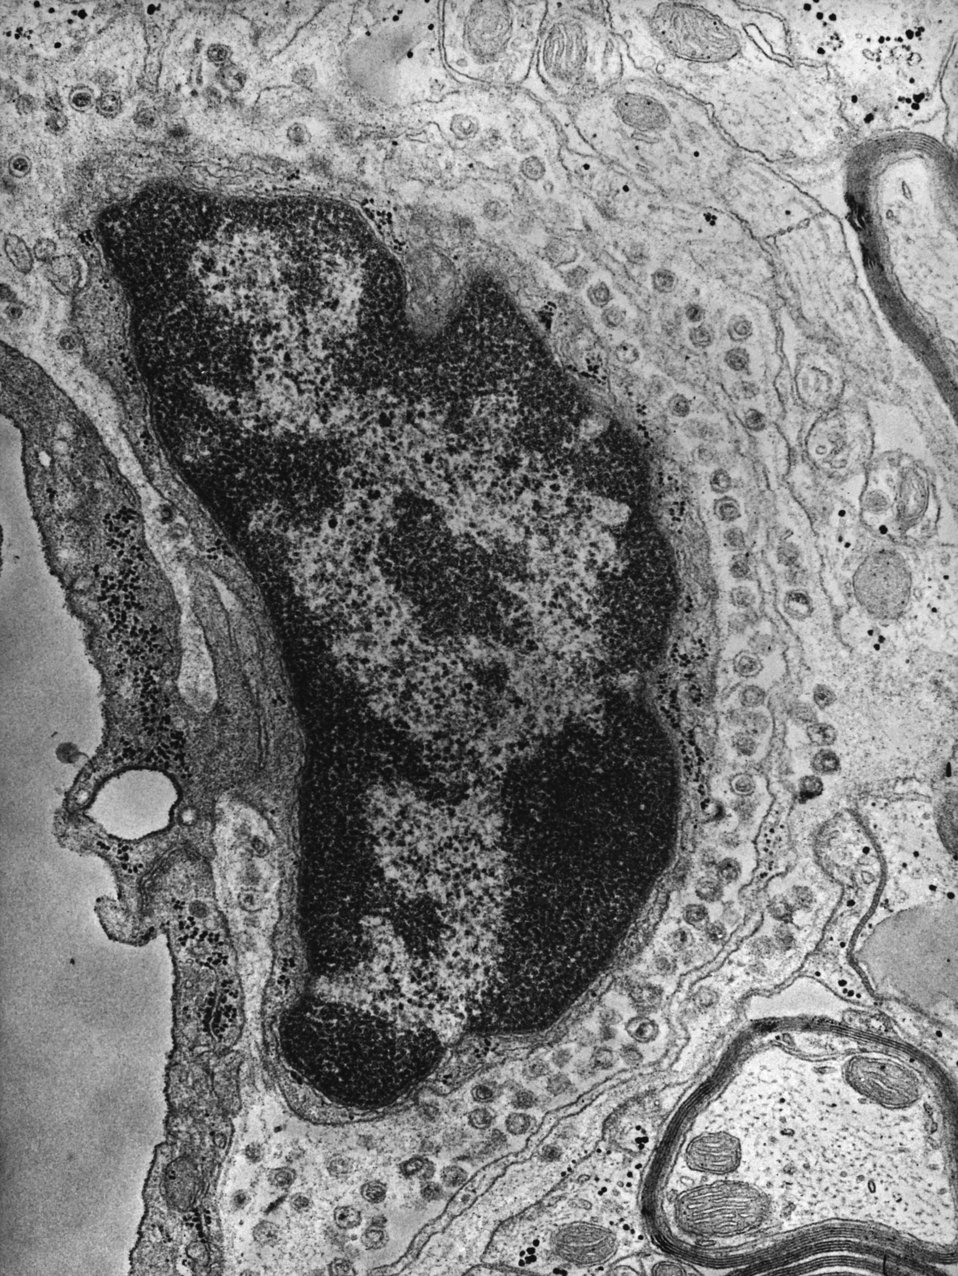 This negatively-stained transmission electron micrograph (TEM) revealed the presence of numerous intracellular Group C RNA tumor virus parti